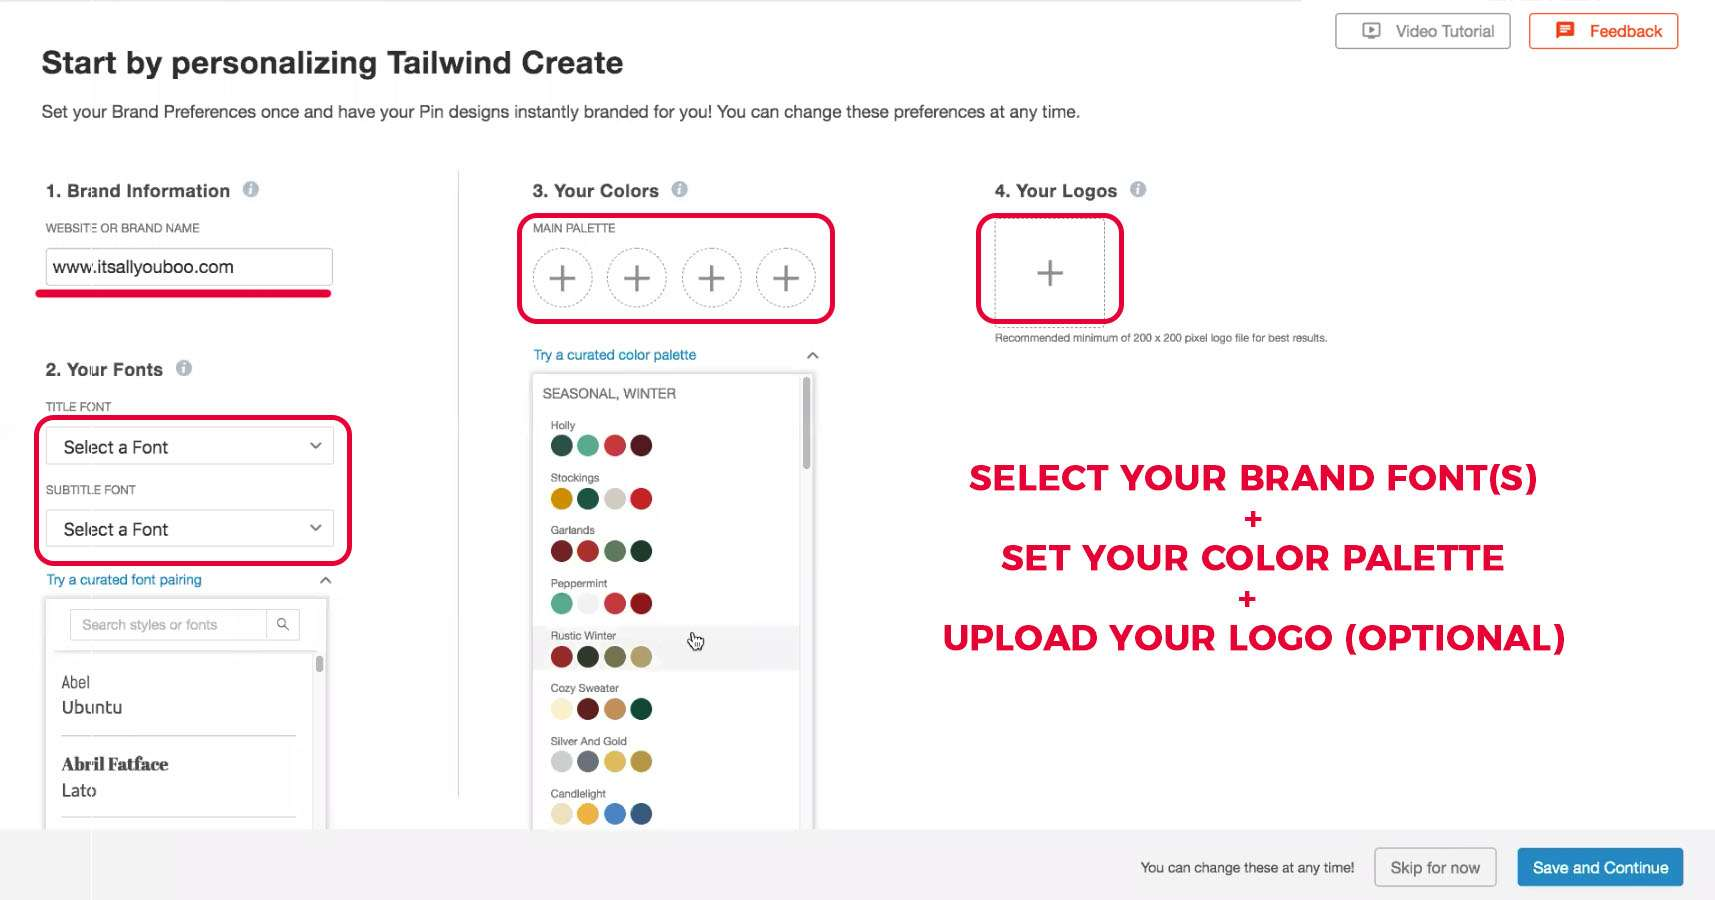 Start by personalizing Tailwind Create panel where you set your brand information, your fonts, colors and logo.